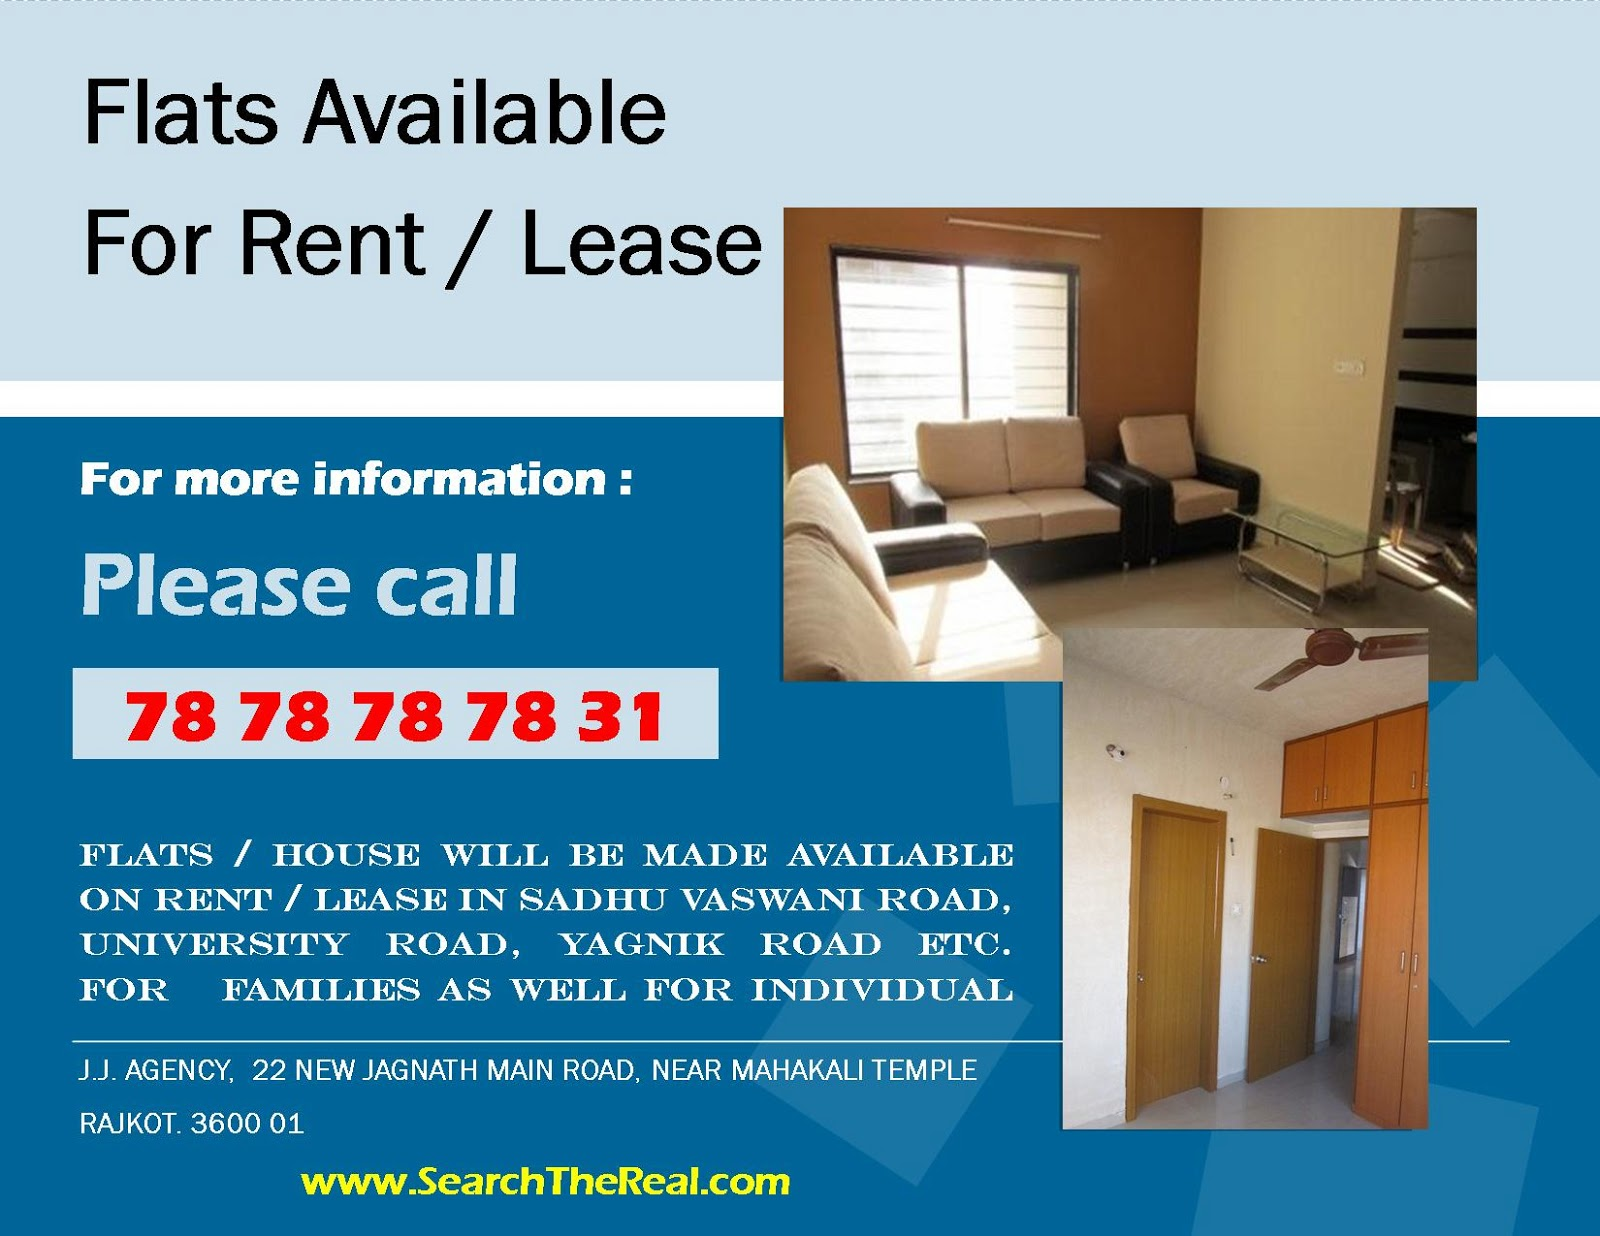 flat available on rent in rajkot